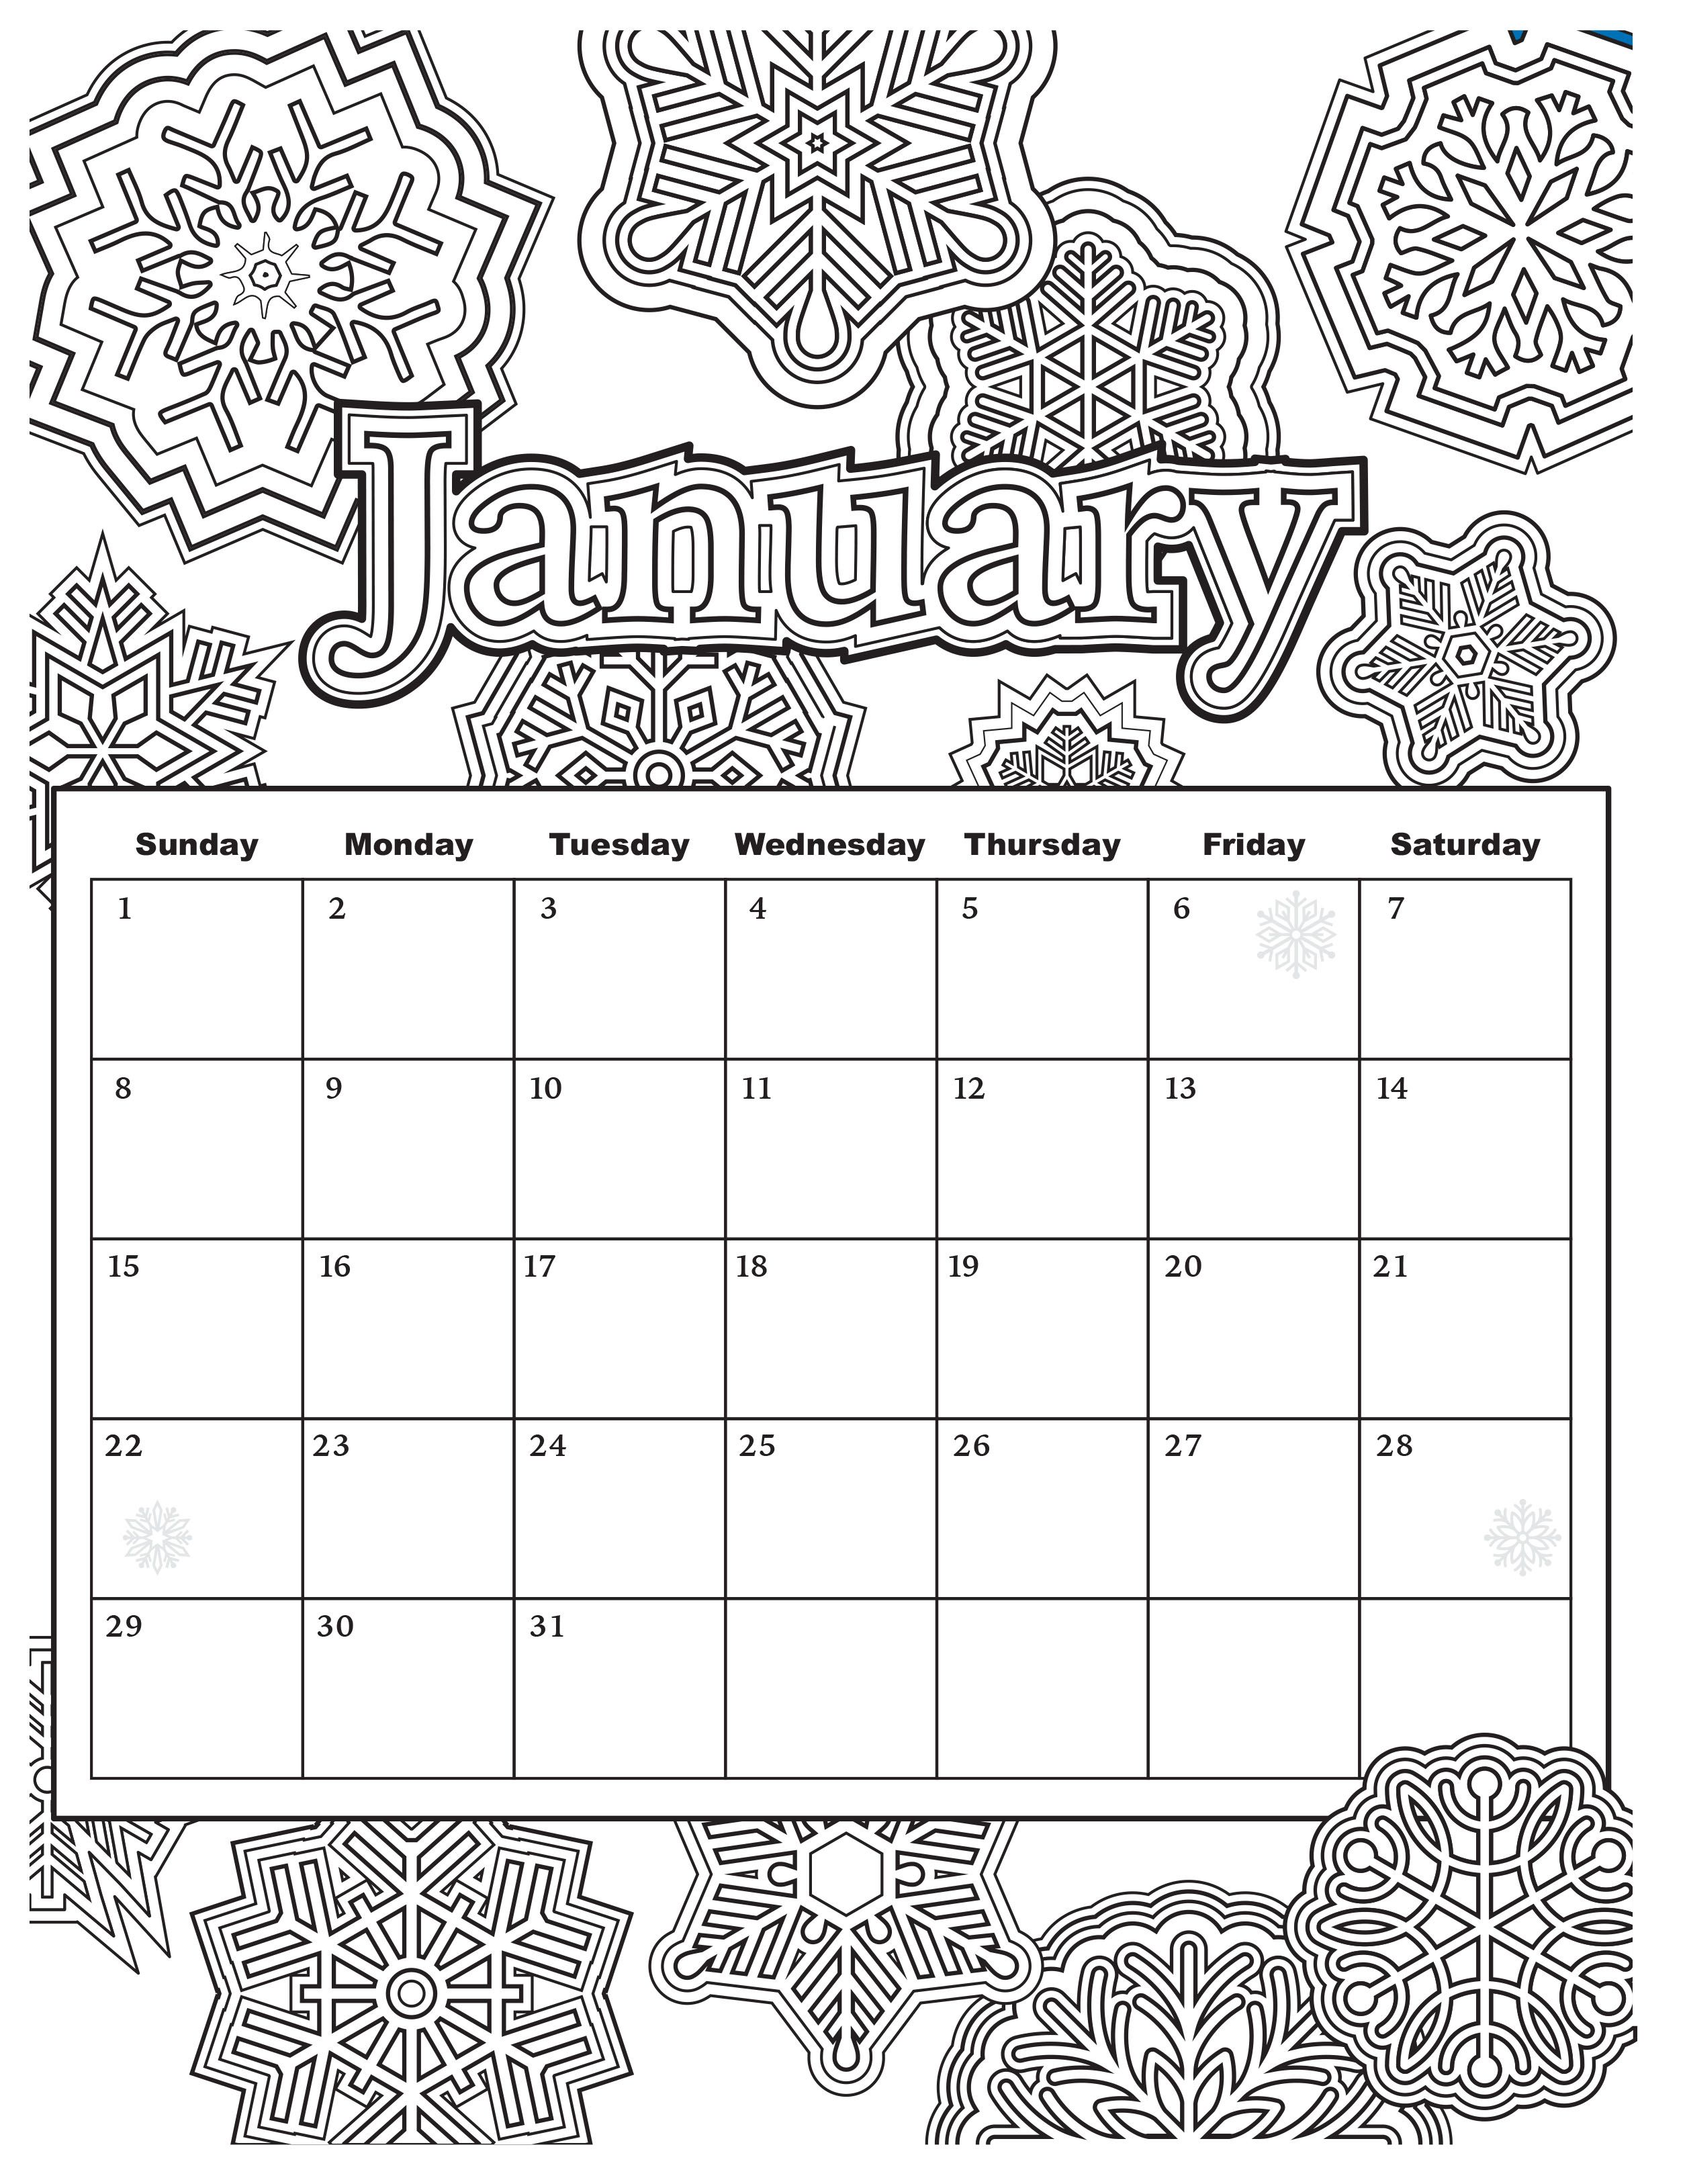 Printable Coloring Calendar 2019 With Free Download Pages From Popular Adult Books